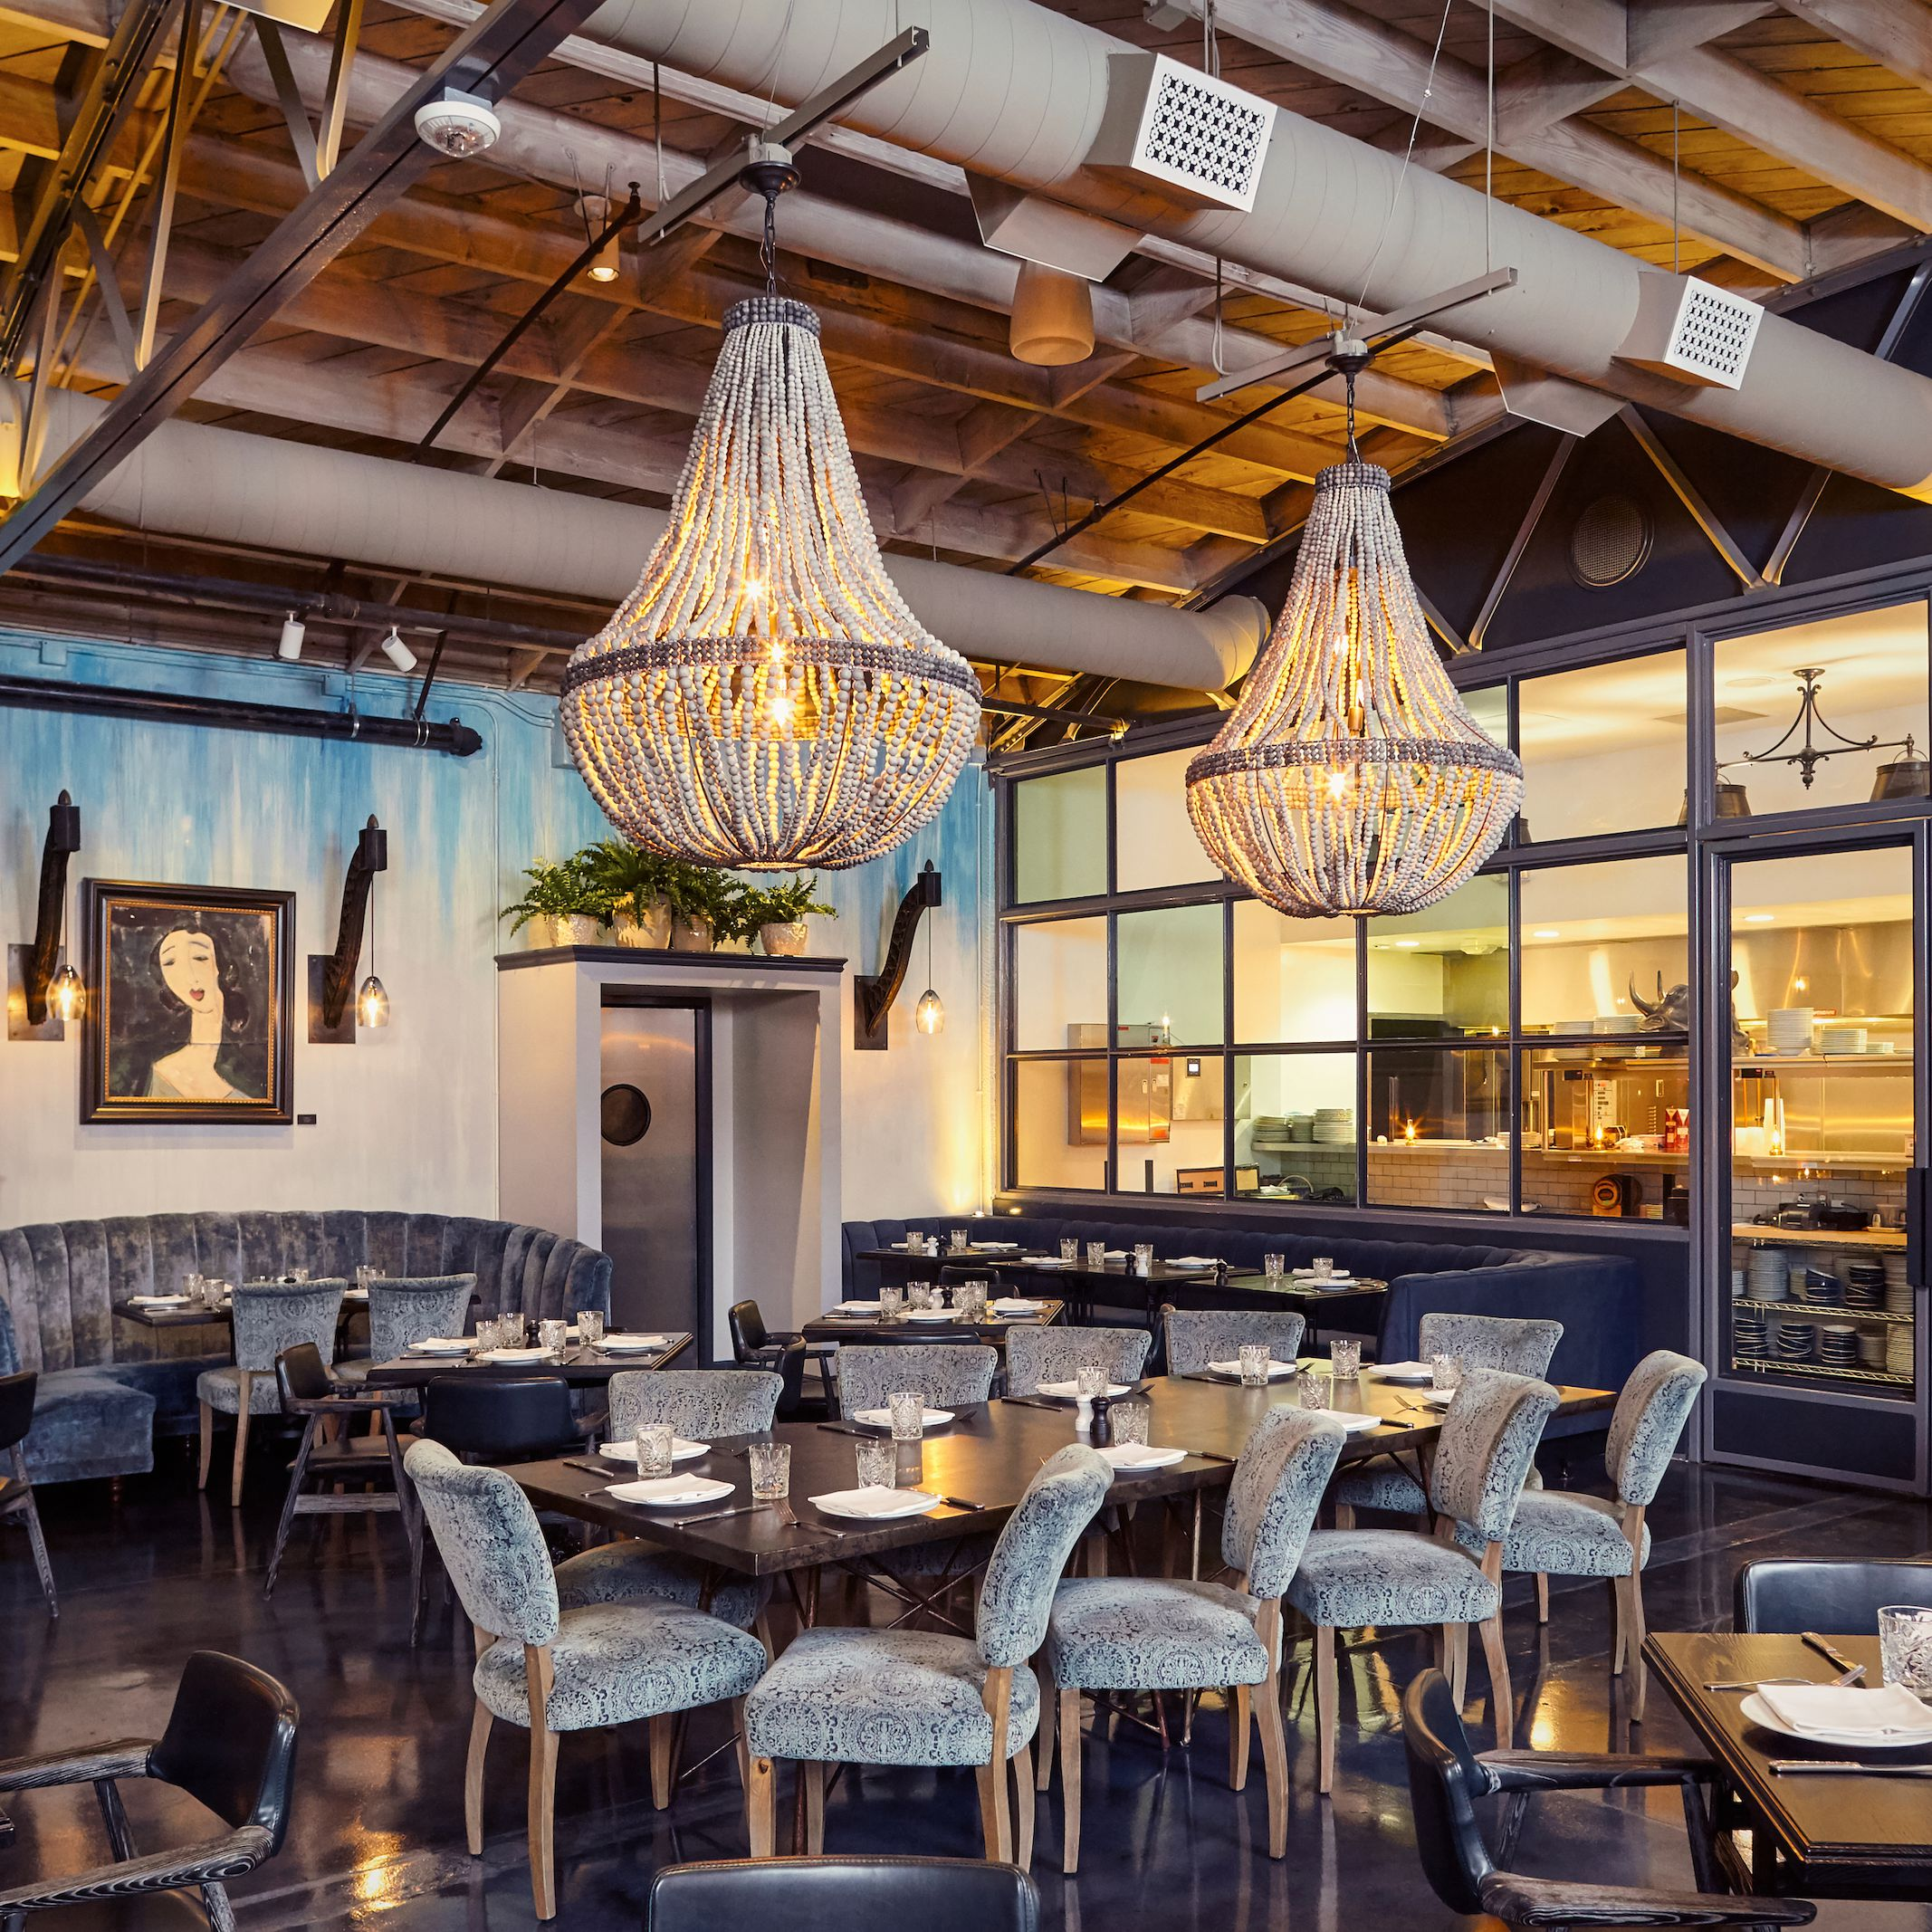 The 20 Best Restaurants in San Diego